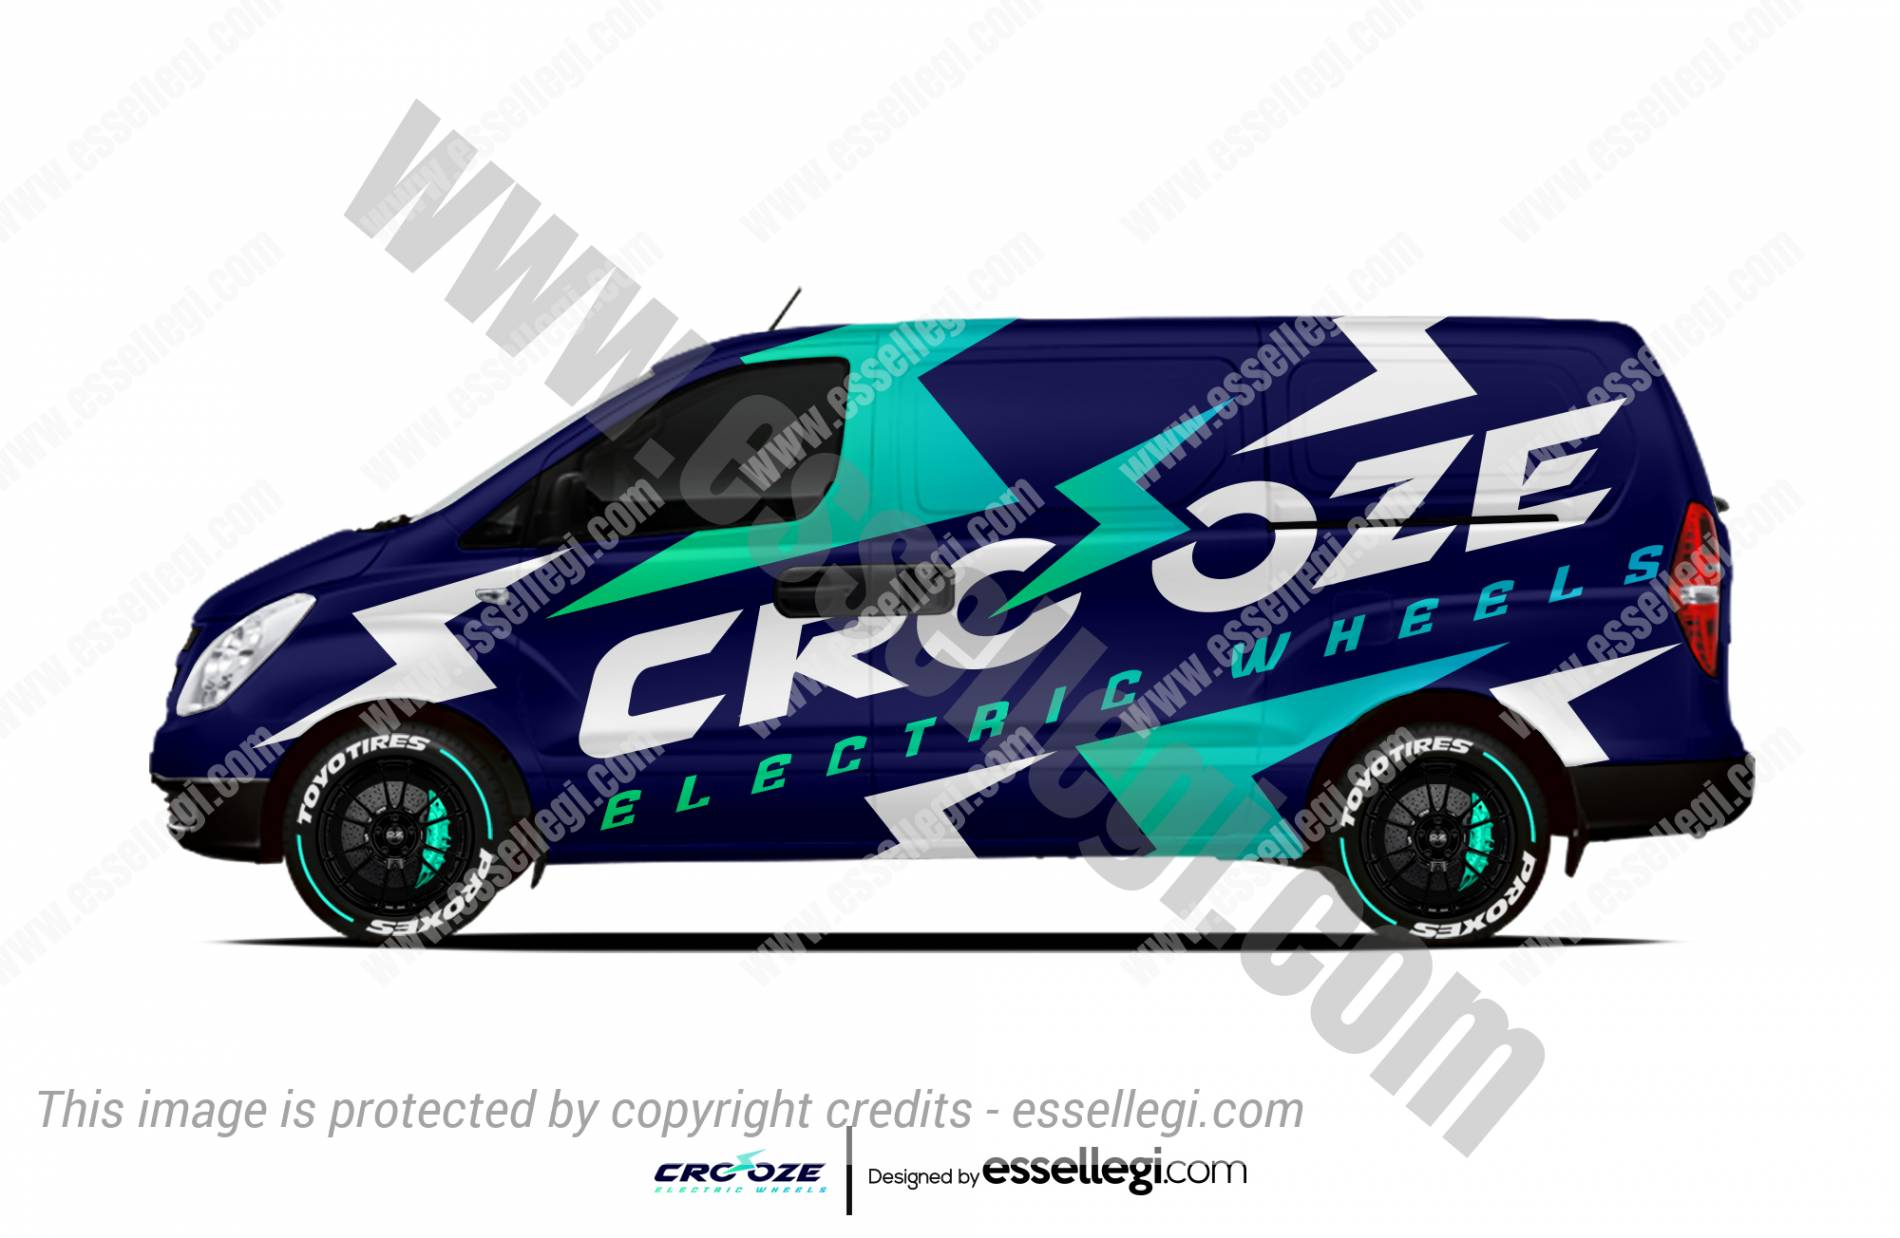 CROOZE | VAN WRAP DESIGN 🇦🇺